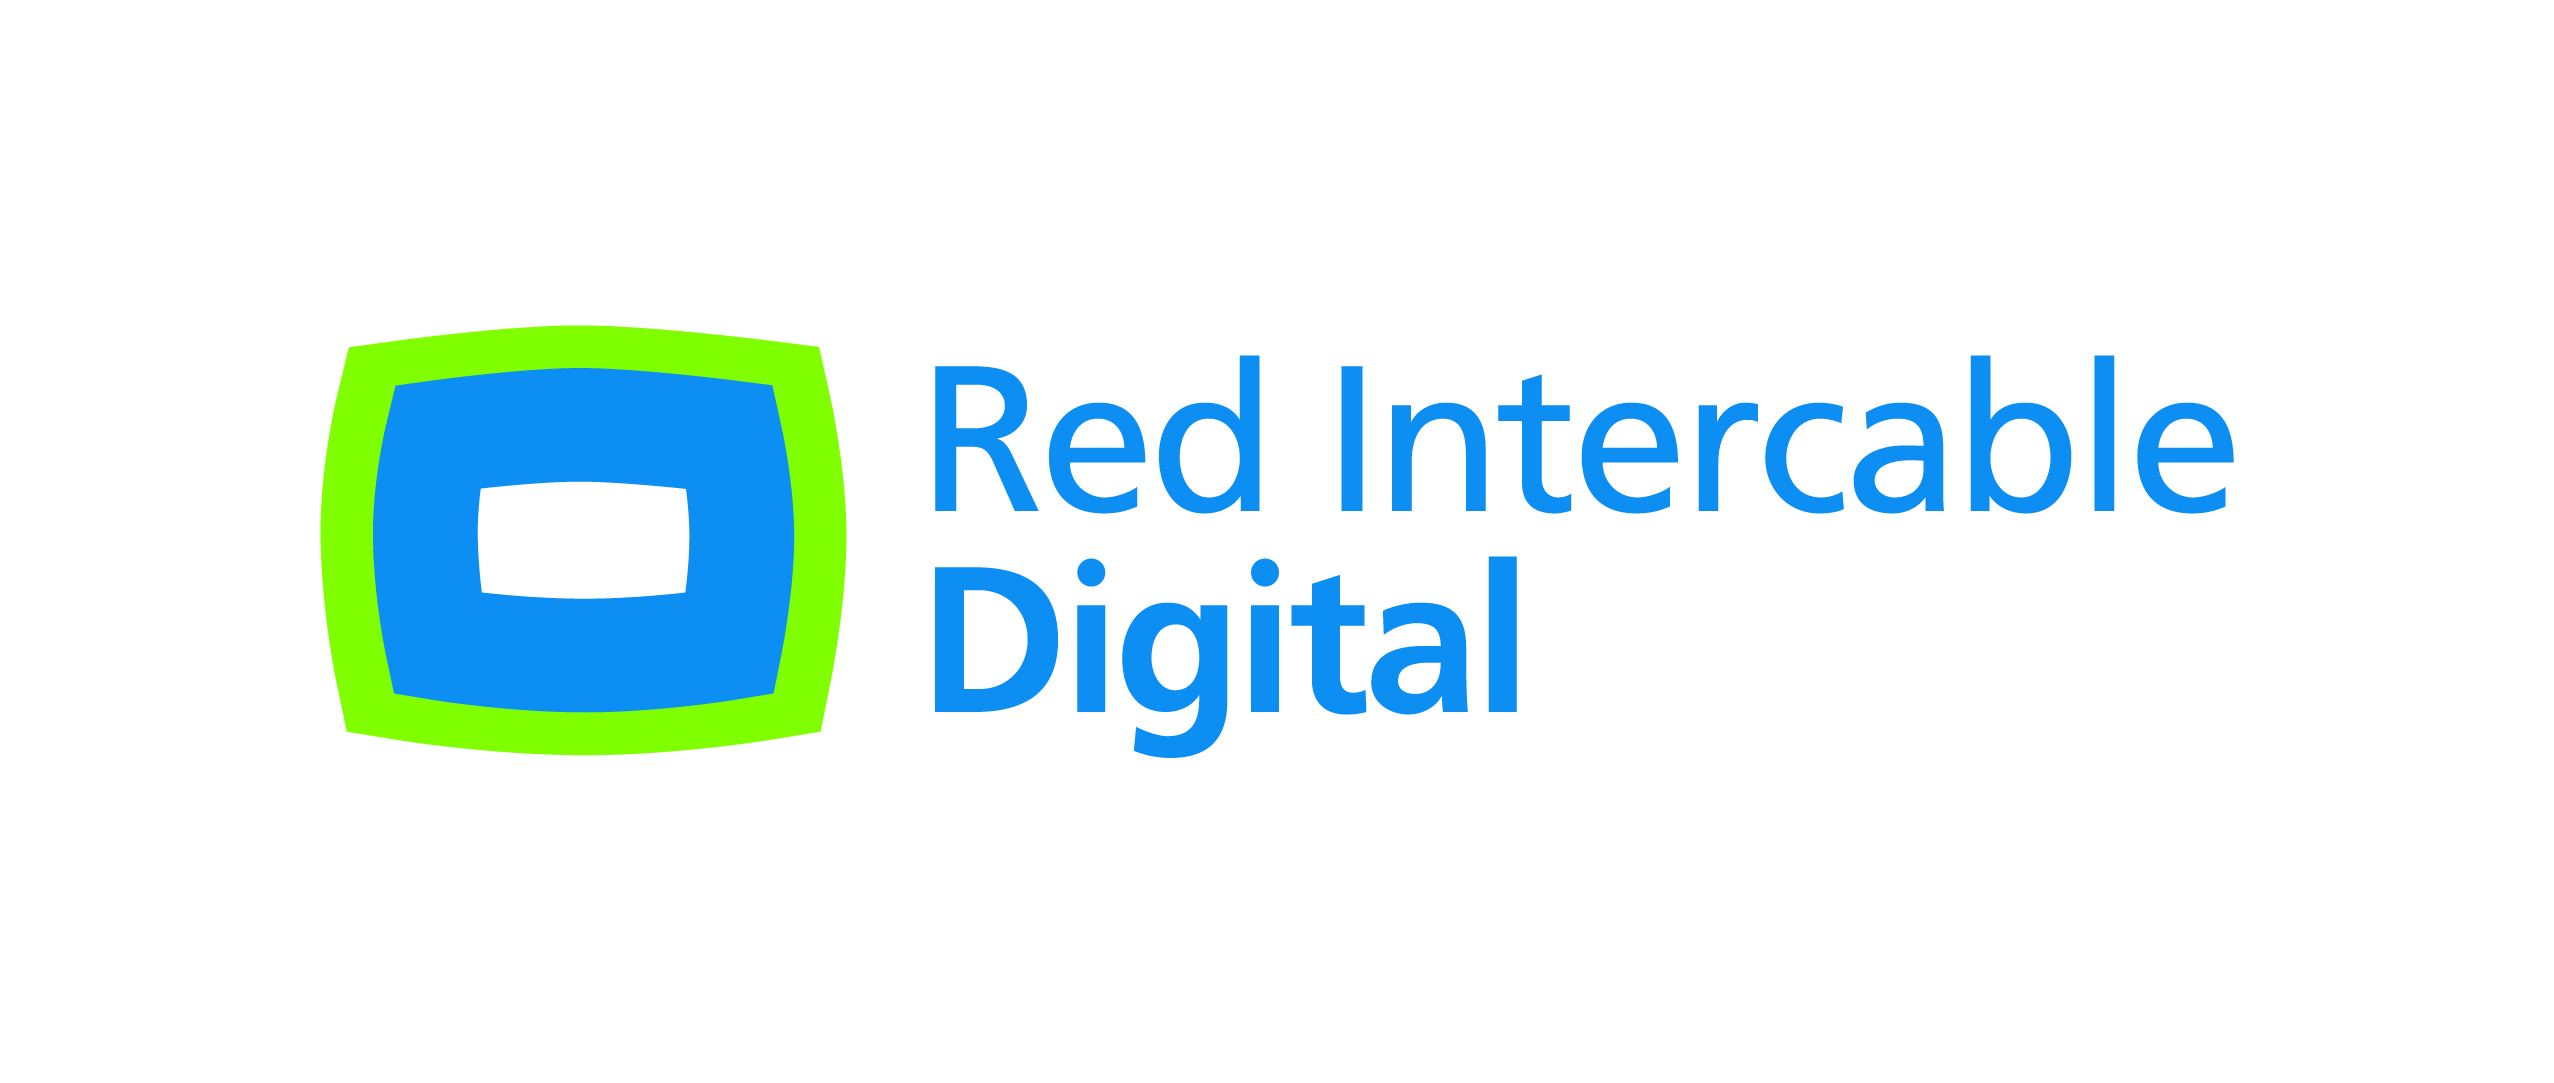 Red Intercable Digital